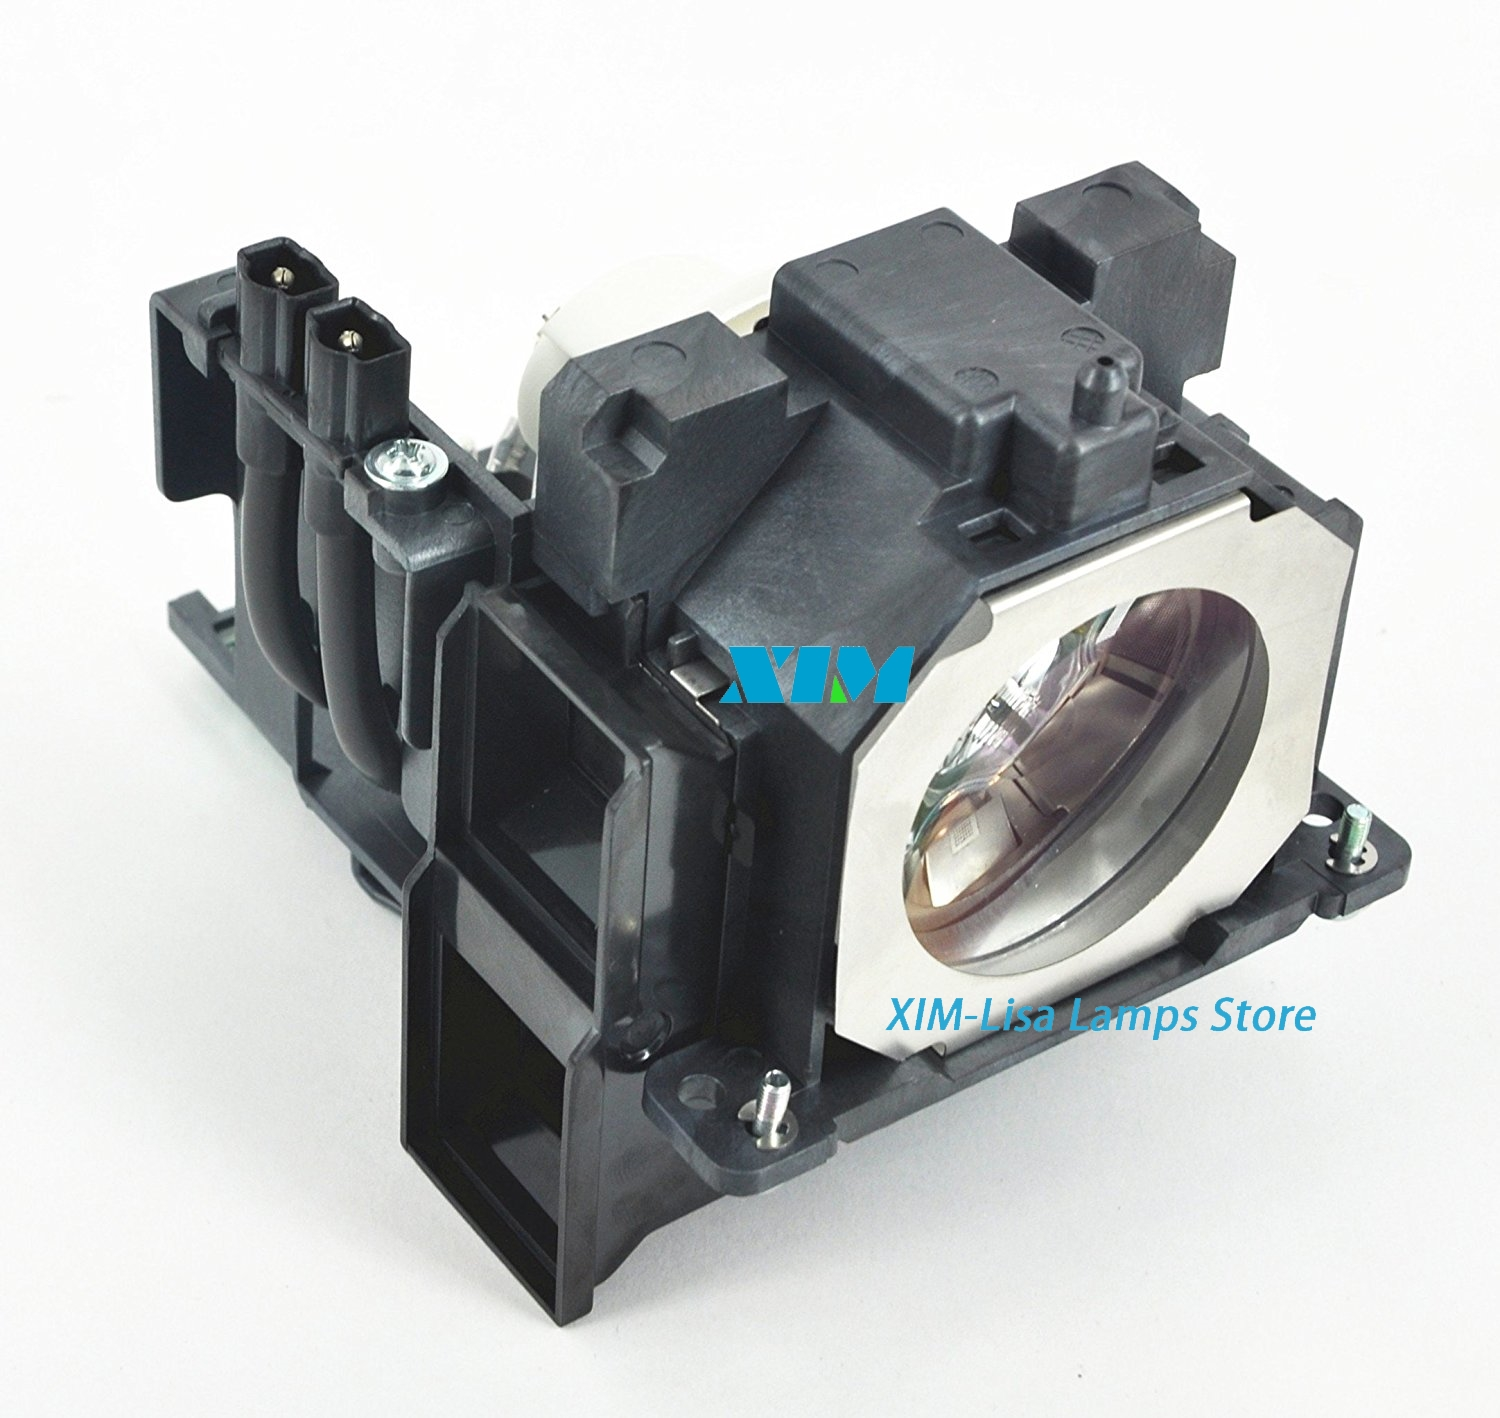 High Quality Replacement Projector lamp with housing ET-LAE300 For PT-EW540 PT-EZ770ZL PT-EX800Z PT-EX800ZL PT-EW730Z PT-EW730Z 108 day warranty compatible projector lamp et lax100 hs220w with housing for pana so nic pt ax100 pt ax100e pt ax100u pt ax200